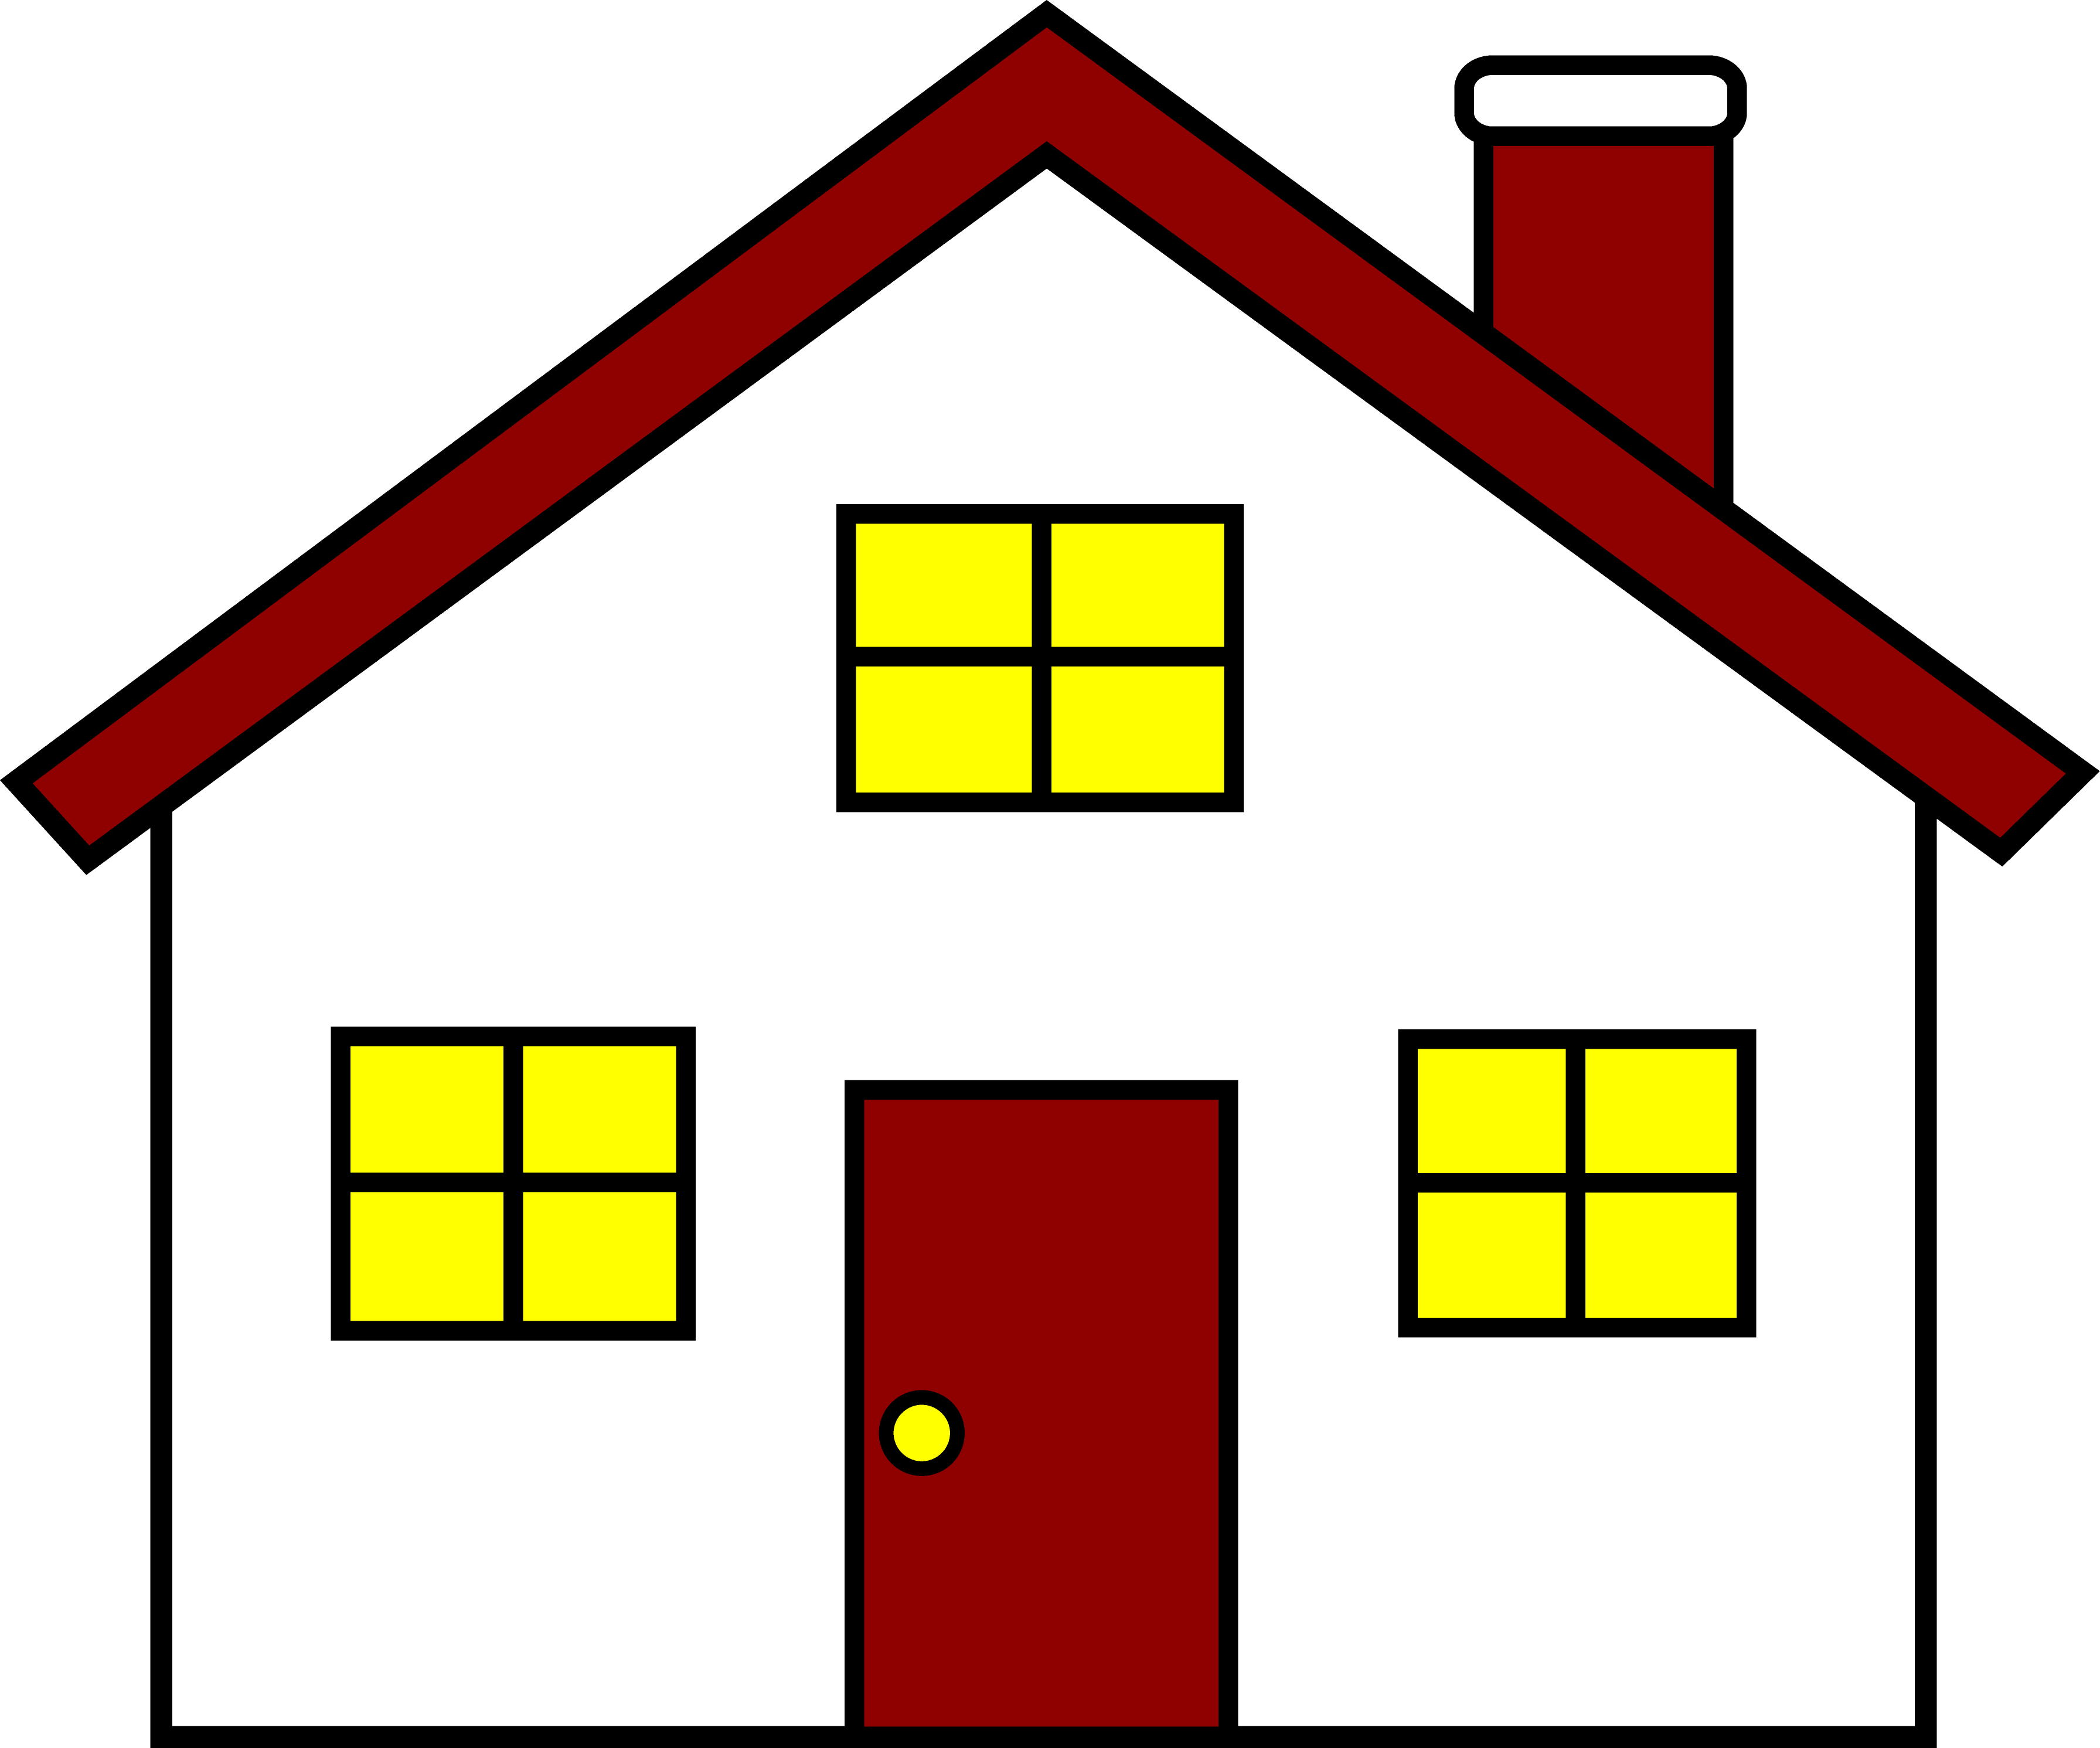 House clip art free. Houses clipart